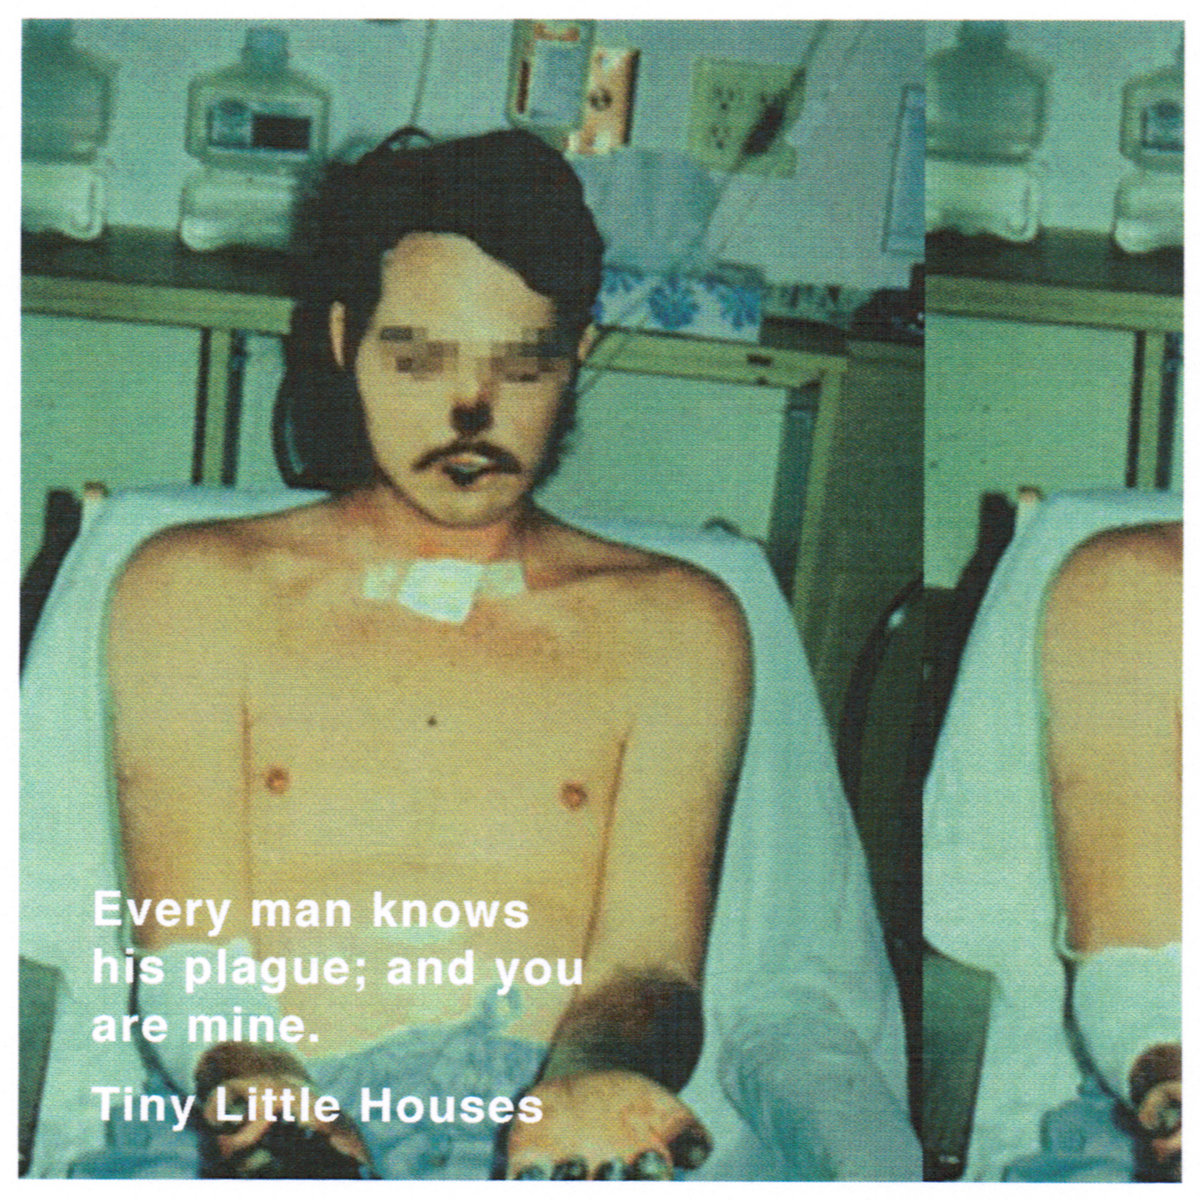 Tiny Little Houses - Every man knows his plague; and you are mine